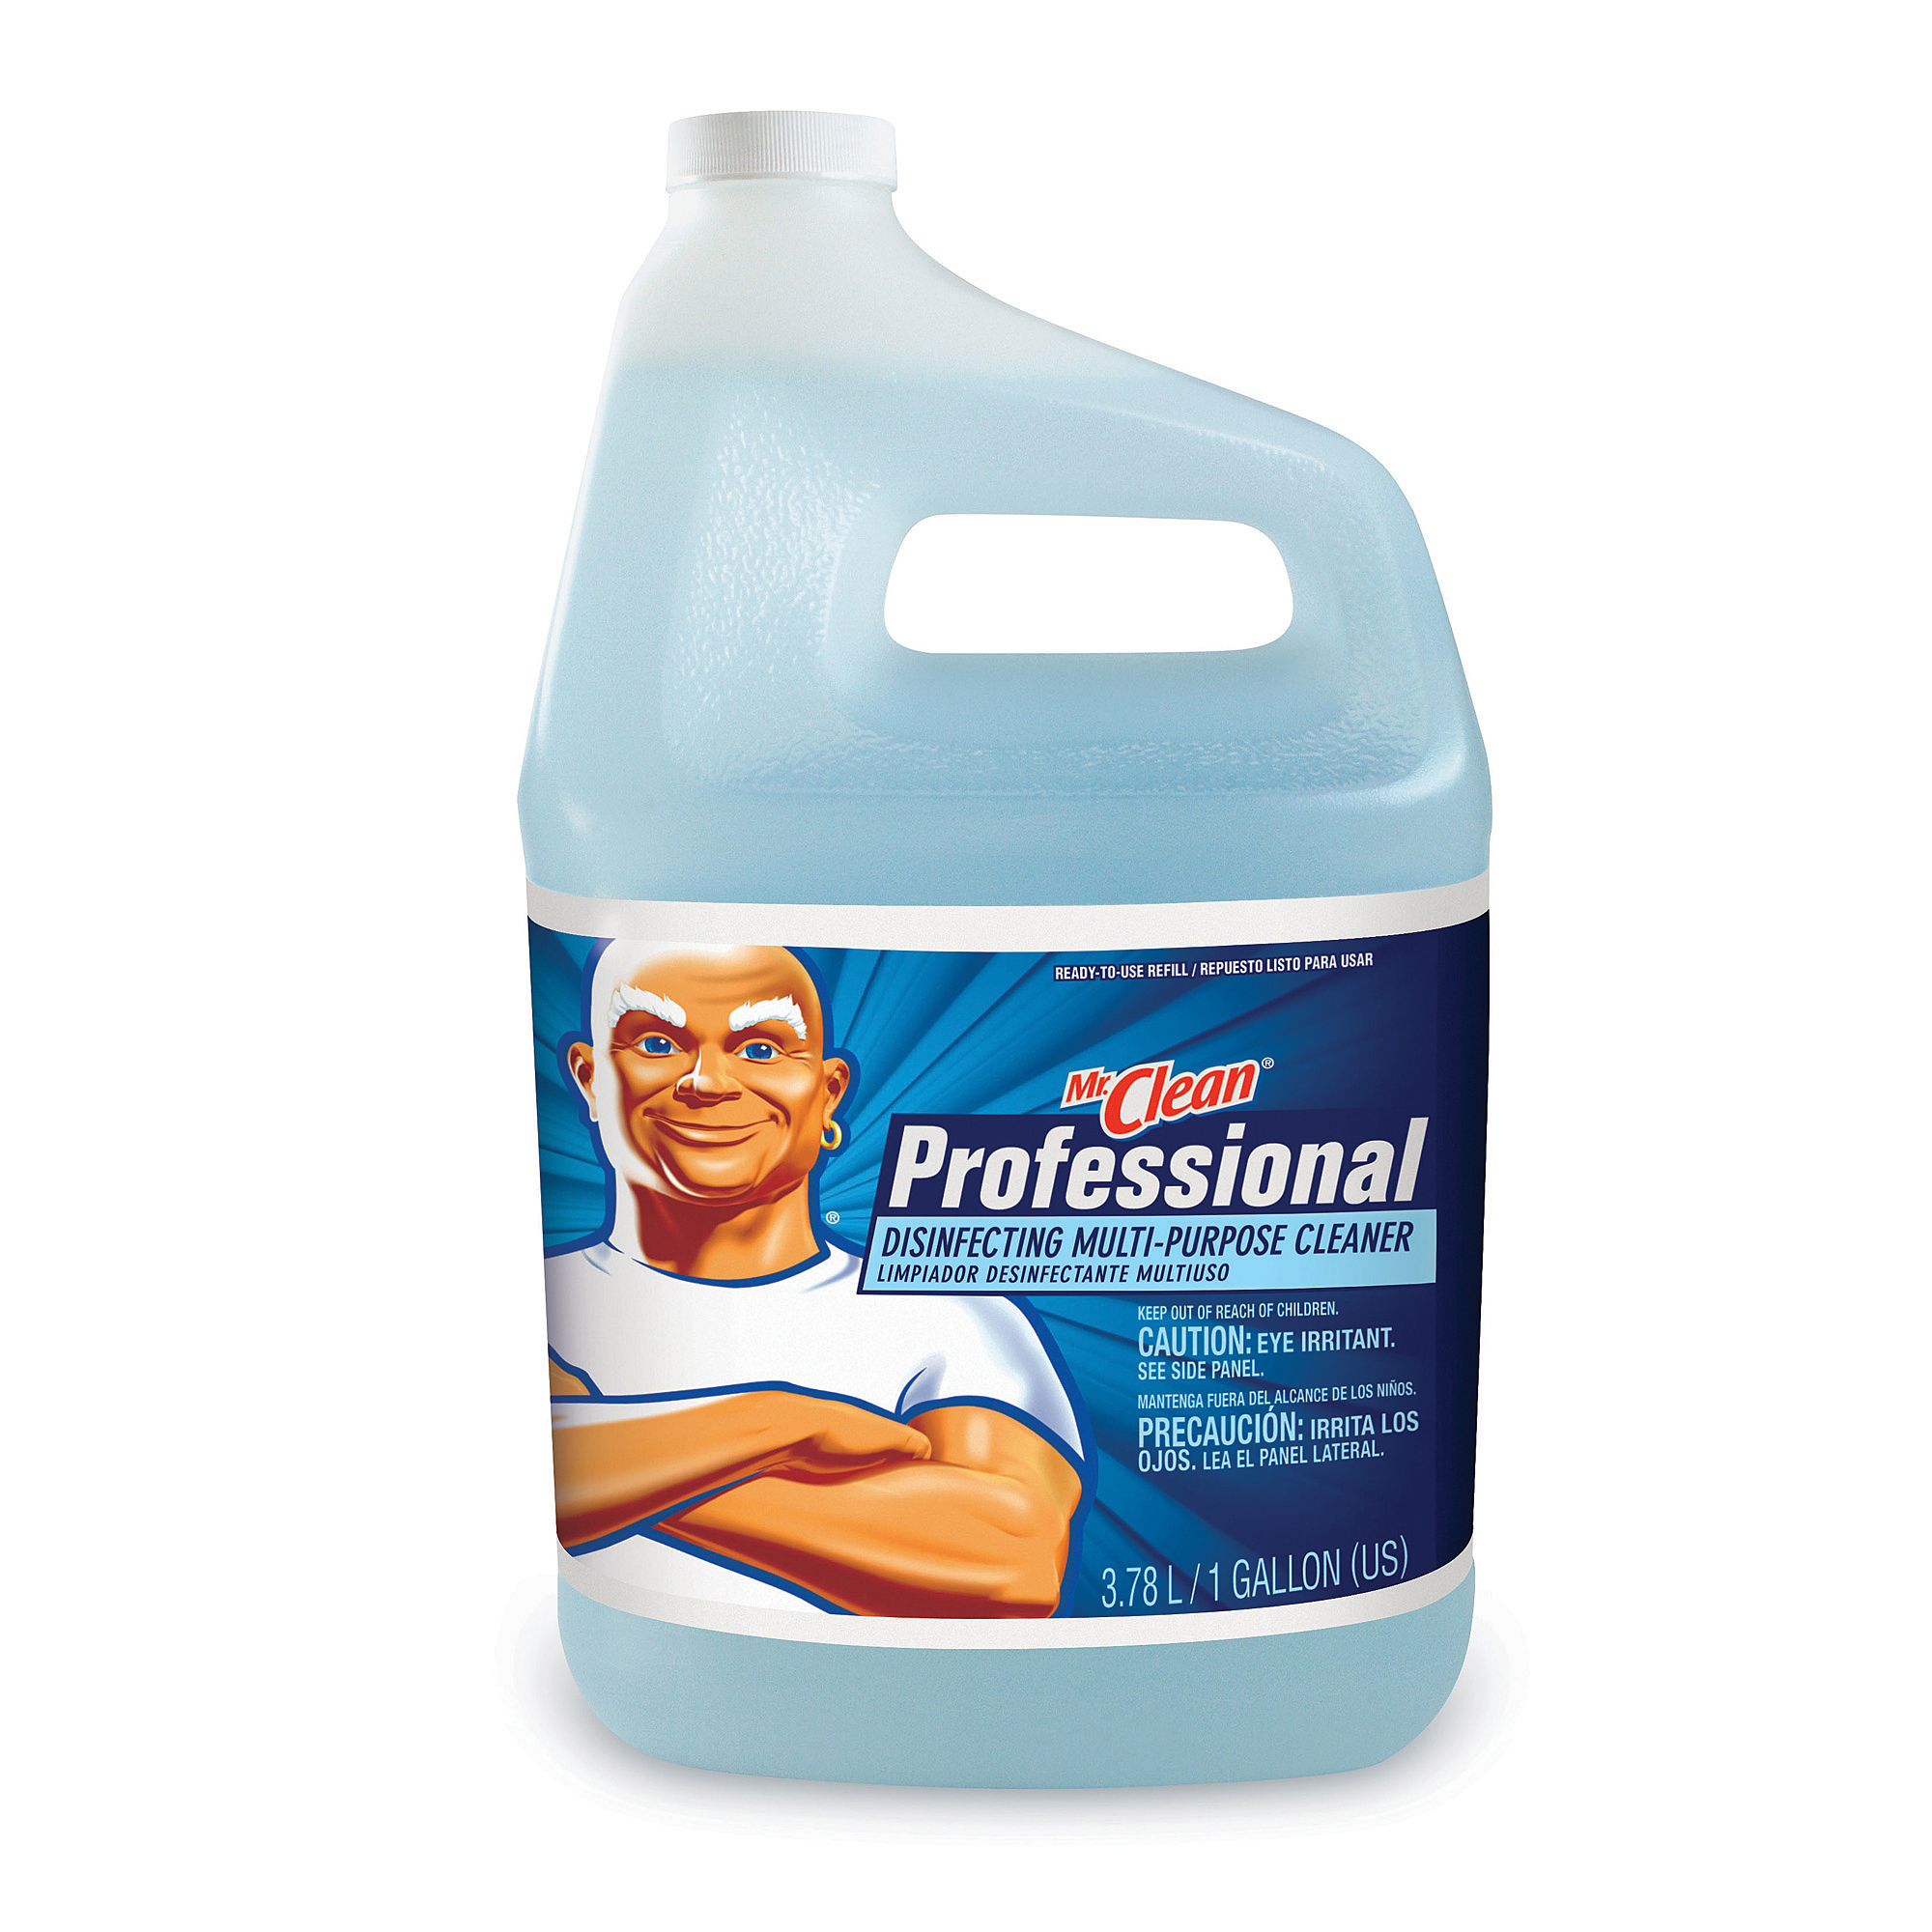 Mr. Clean® Professional Multipurpose Disinfecting Cleaner, 128 Oz Bottle